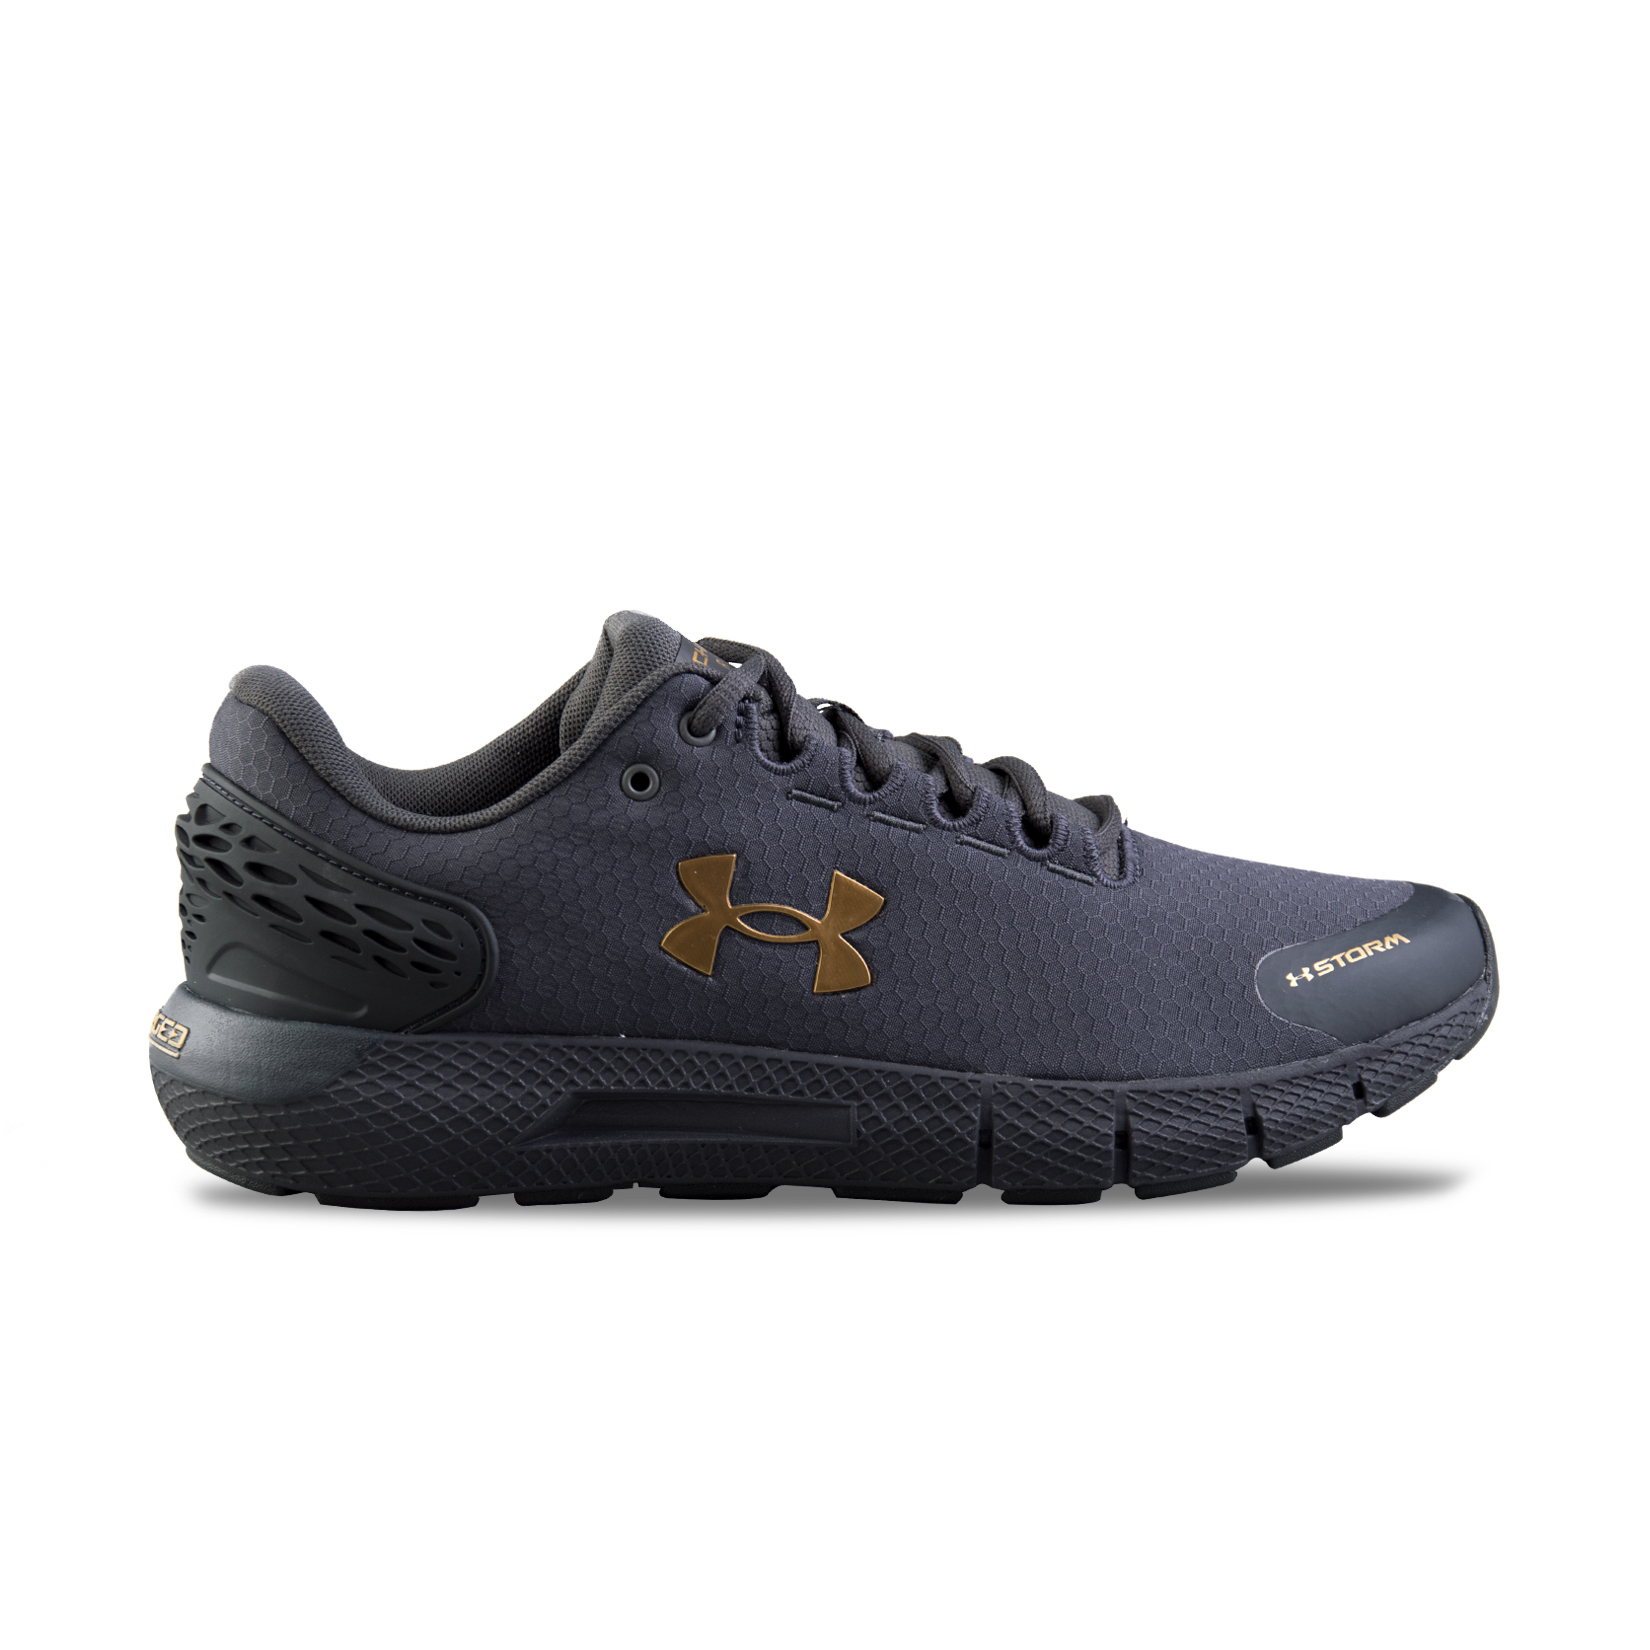 Under Armour Charged Rogue 2 Storm Black - Gold